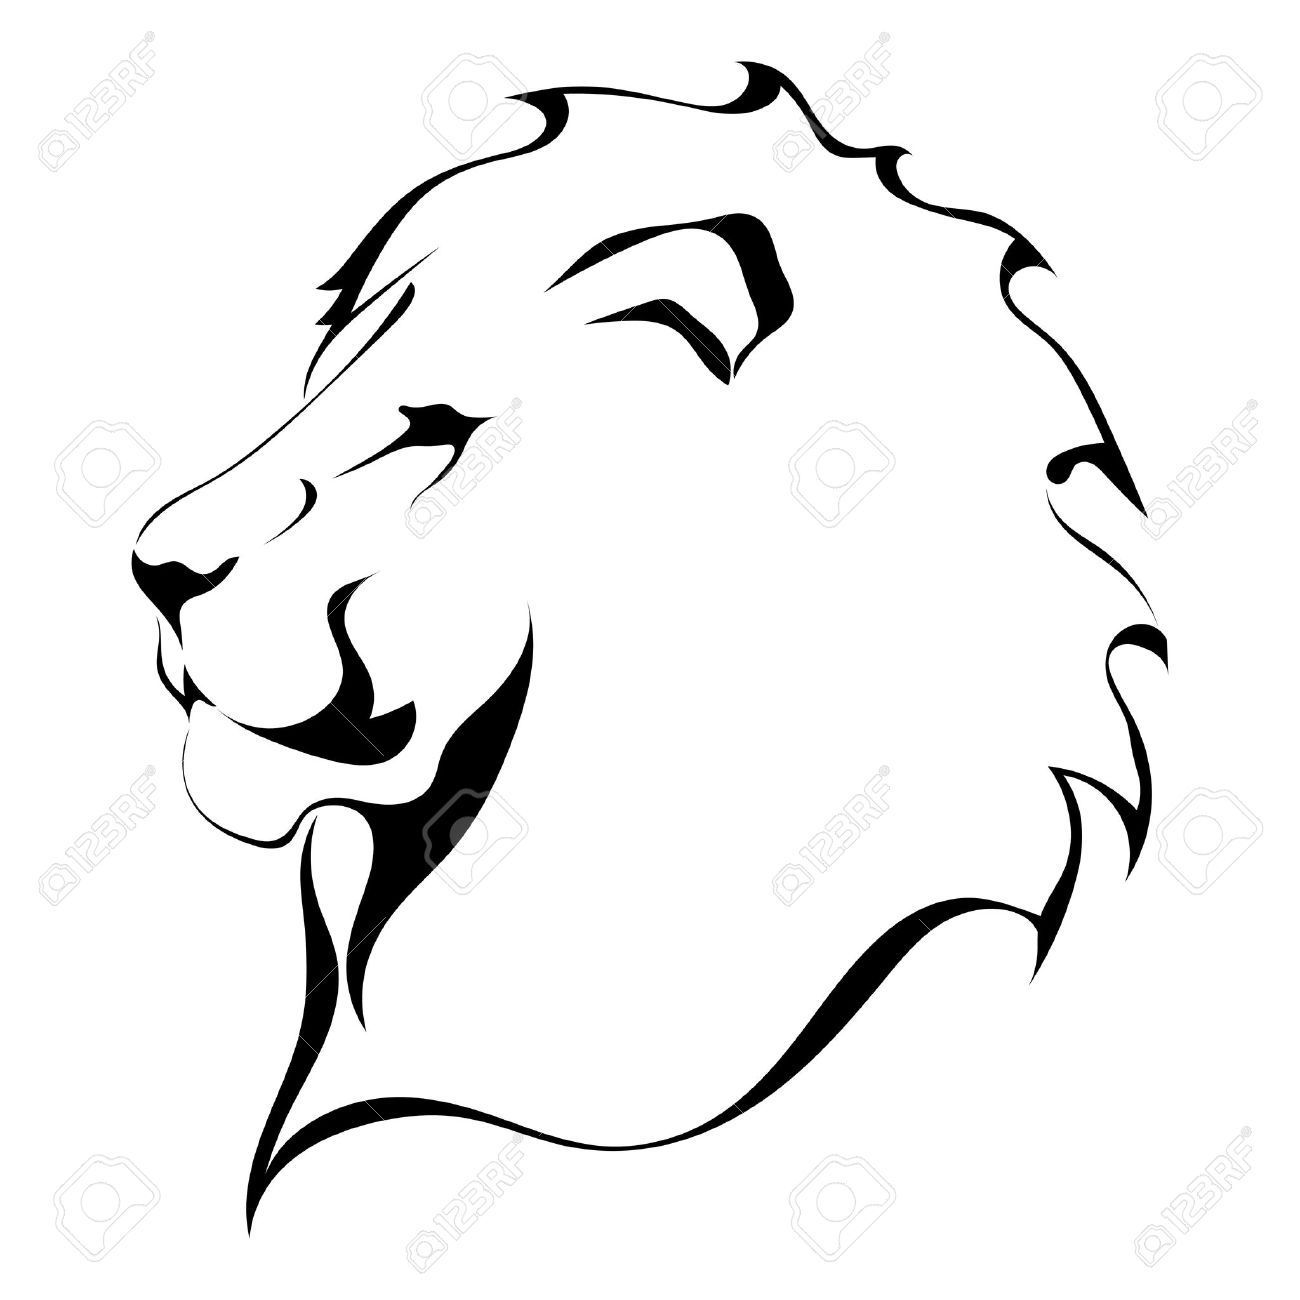 Sketch Outline Lion Art Tattoo Design More than 21 lion outline at pleasant prices up to 12 usd fast and free worldwide shipping! sketch outline lion art tattoo design